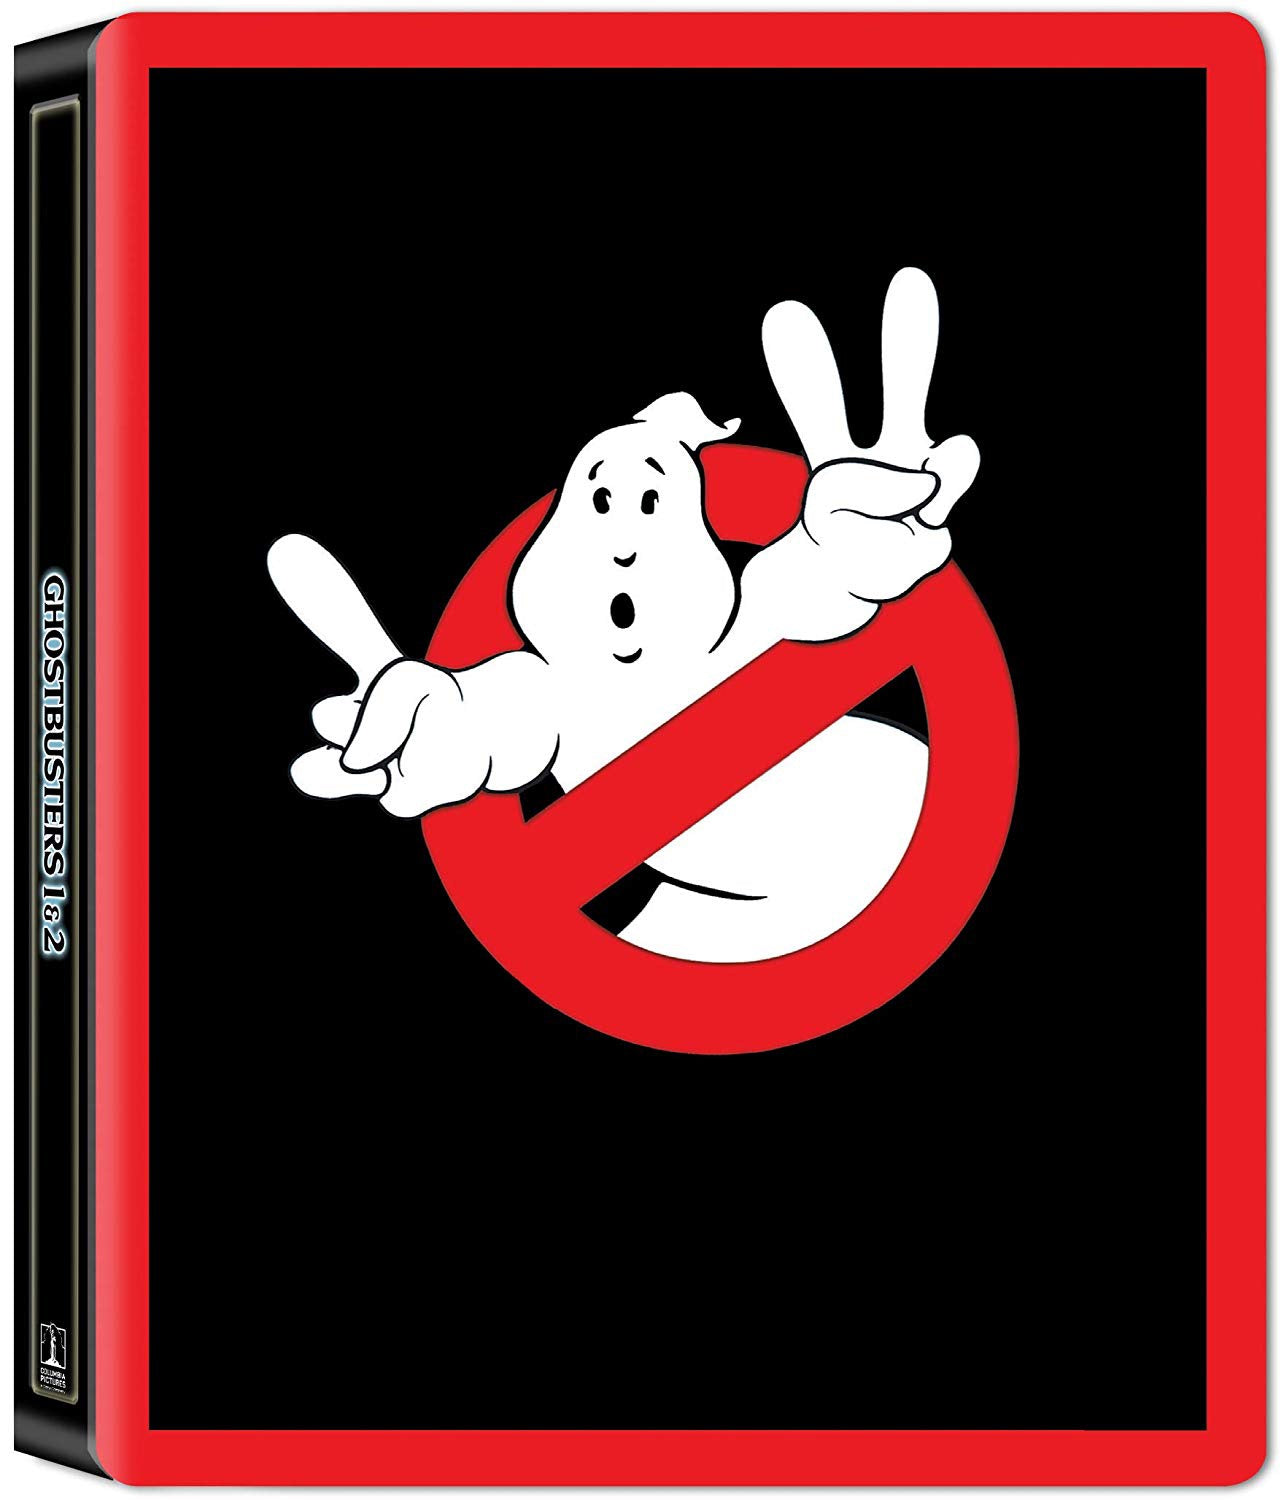 Ghostbusters 1 and 2 Vudu or Movies Anywhere 4K code